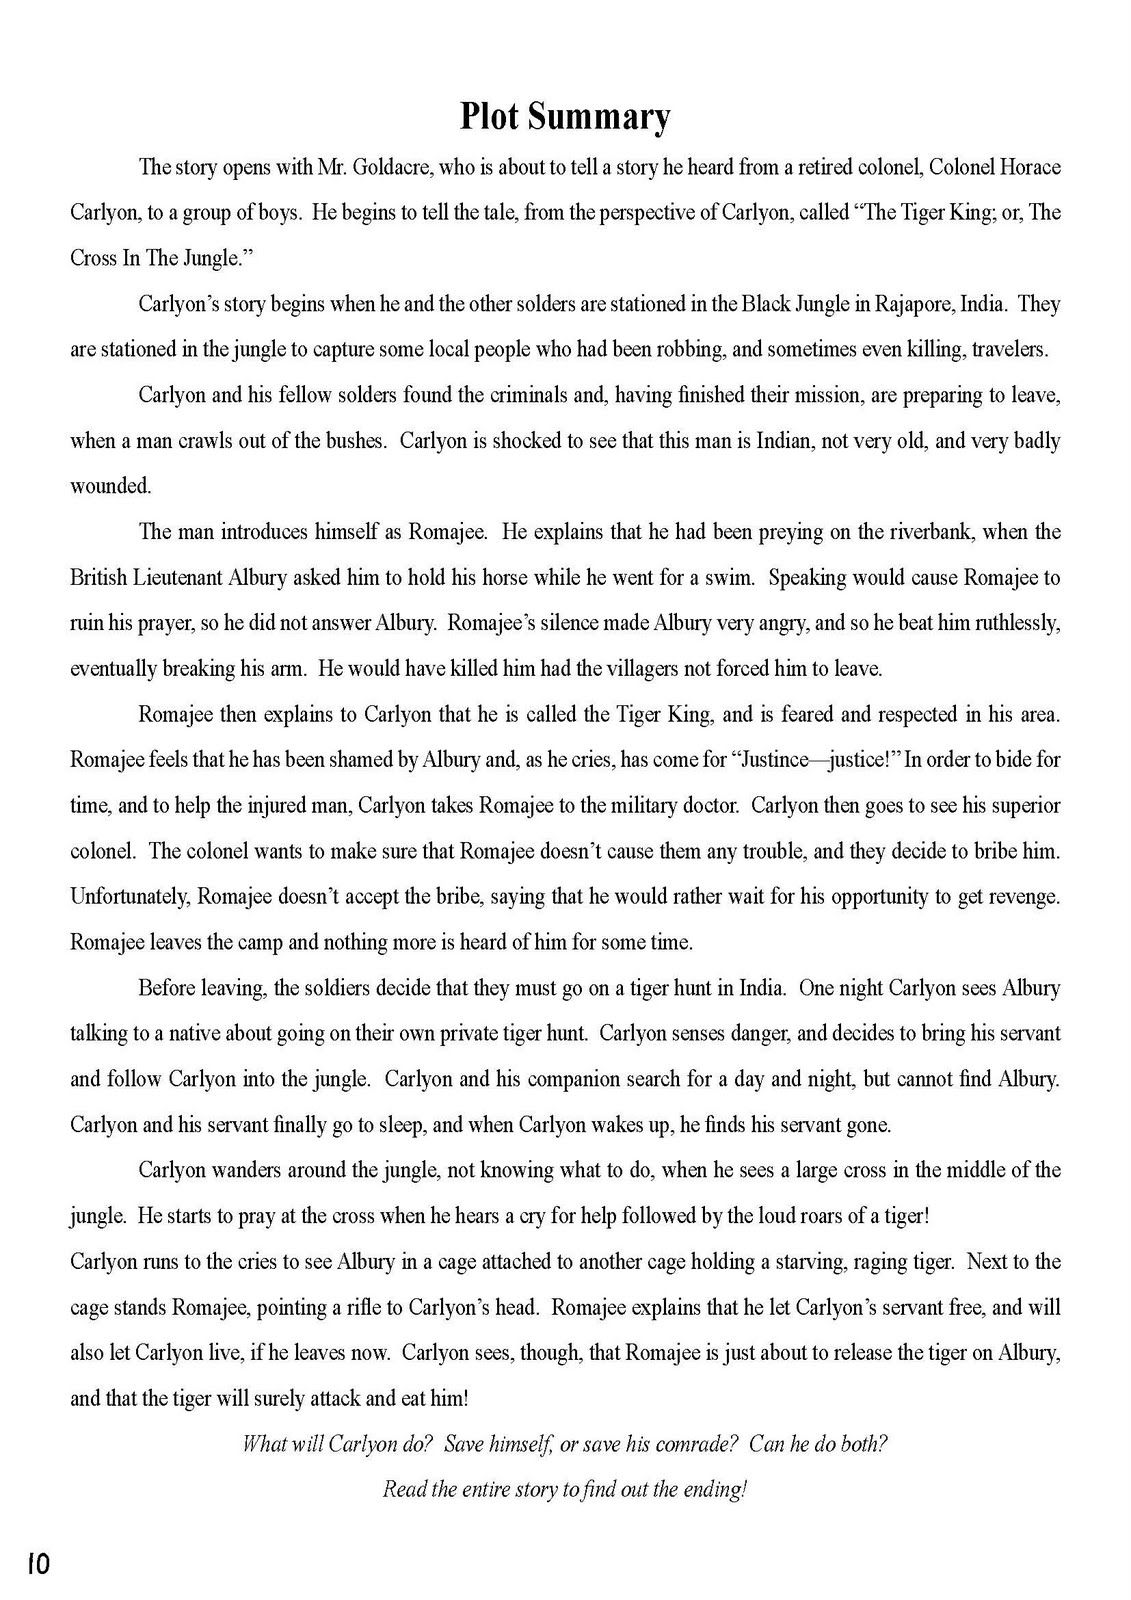 plot summary of the child by tiger Read tiger eyes (2013) synopsis, storyline and movie plot summary on fandango.